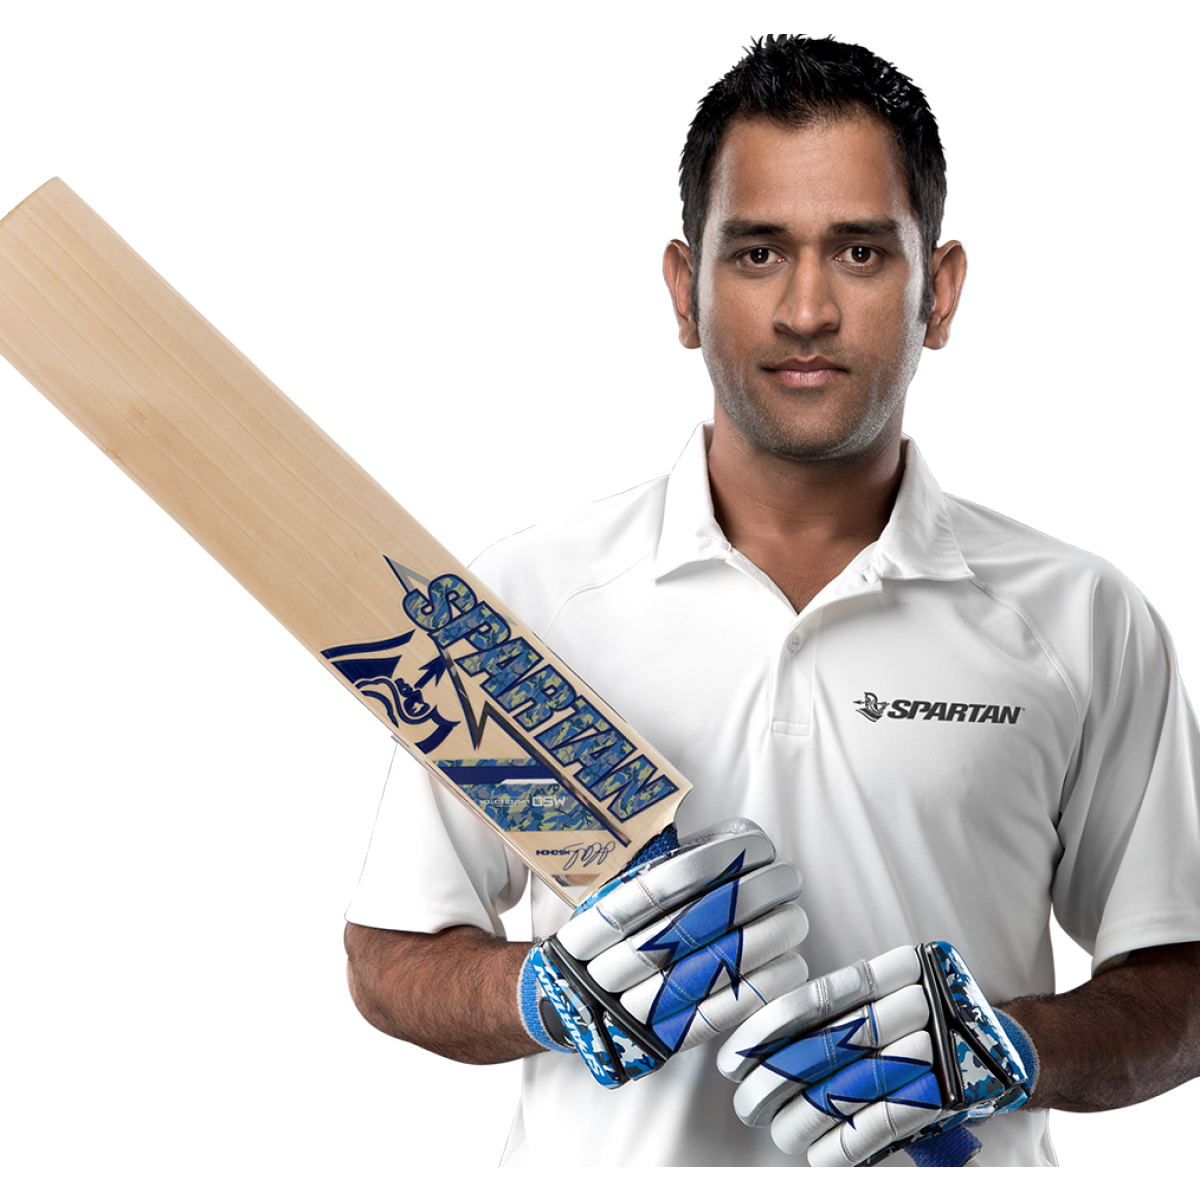 Cricket Tool Bats Ms Dhoni Arm Batting PNG Image